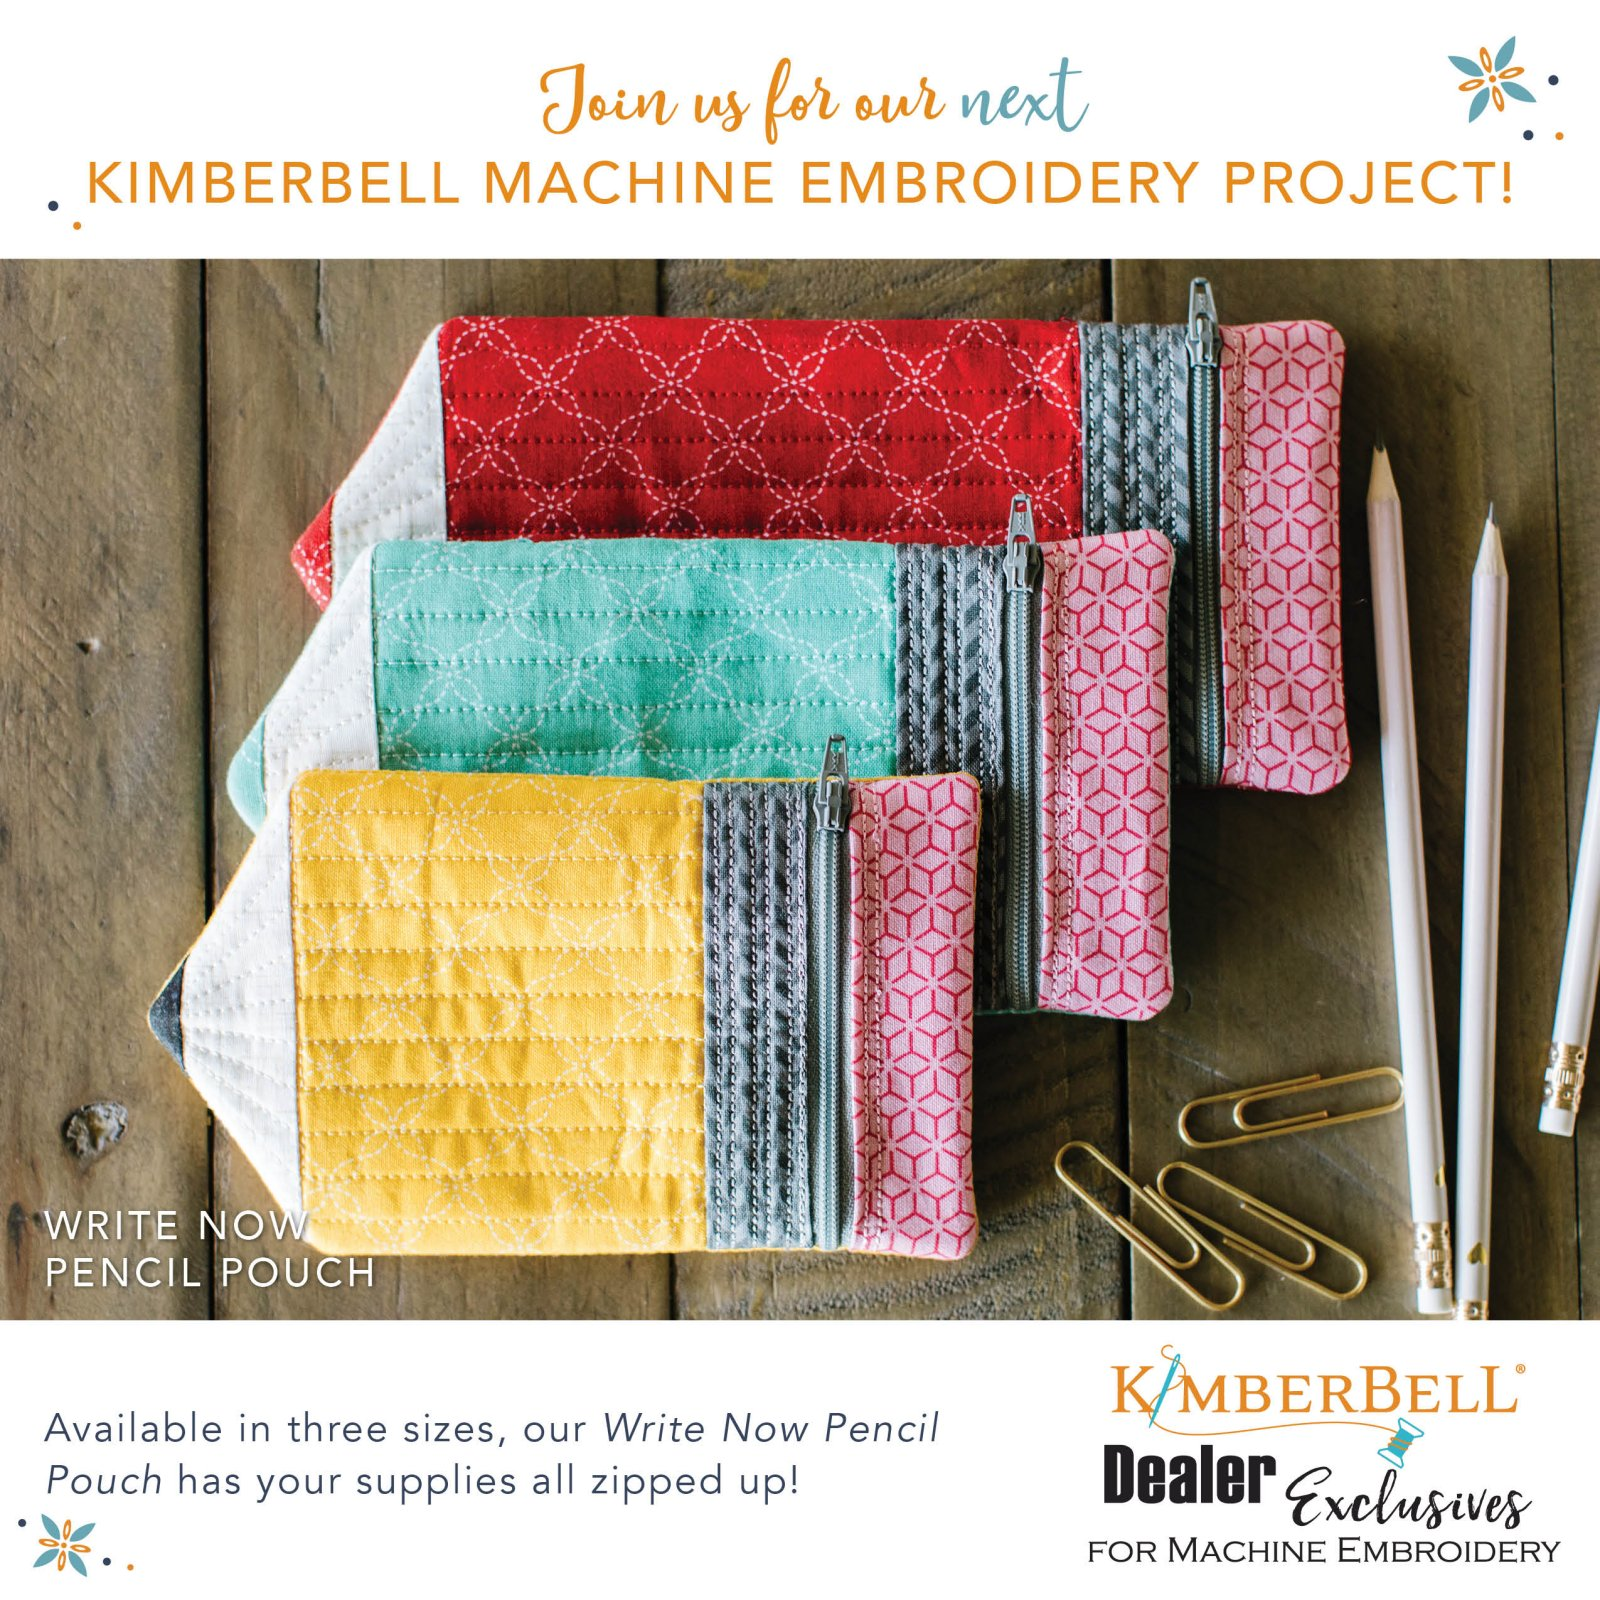 Kimberbell Pencil Pouch Kit (One Pouch)